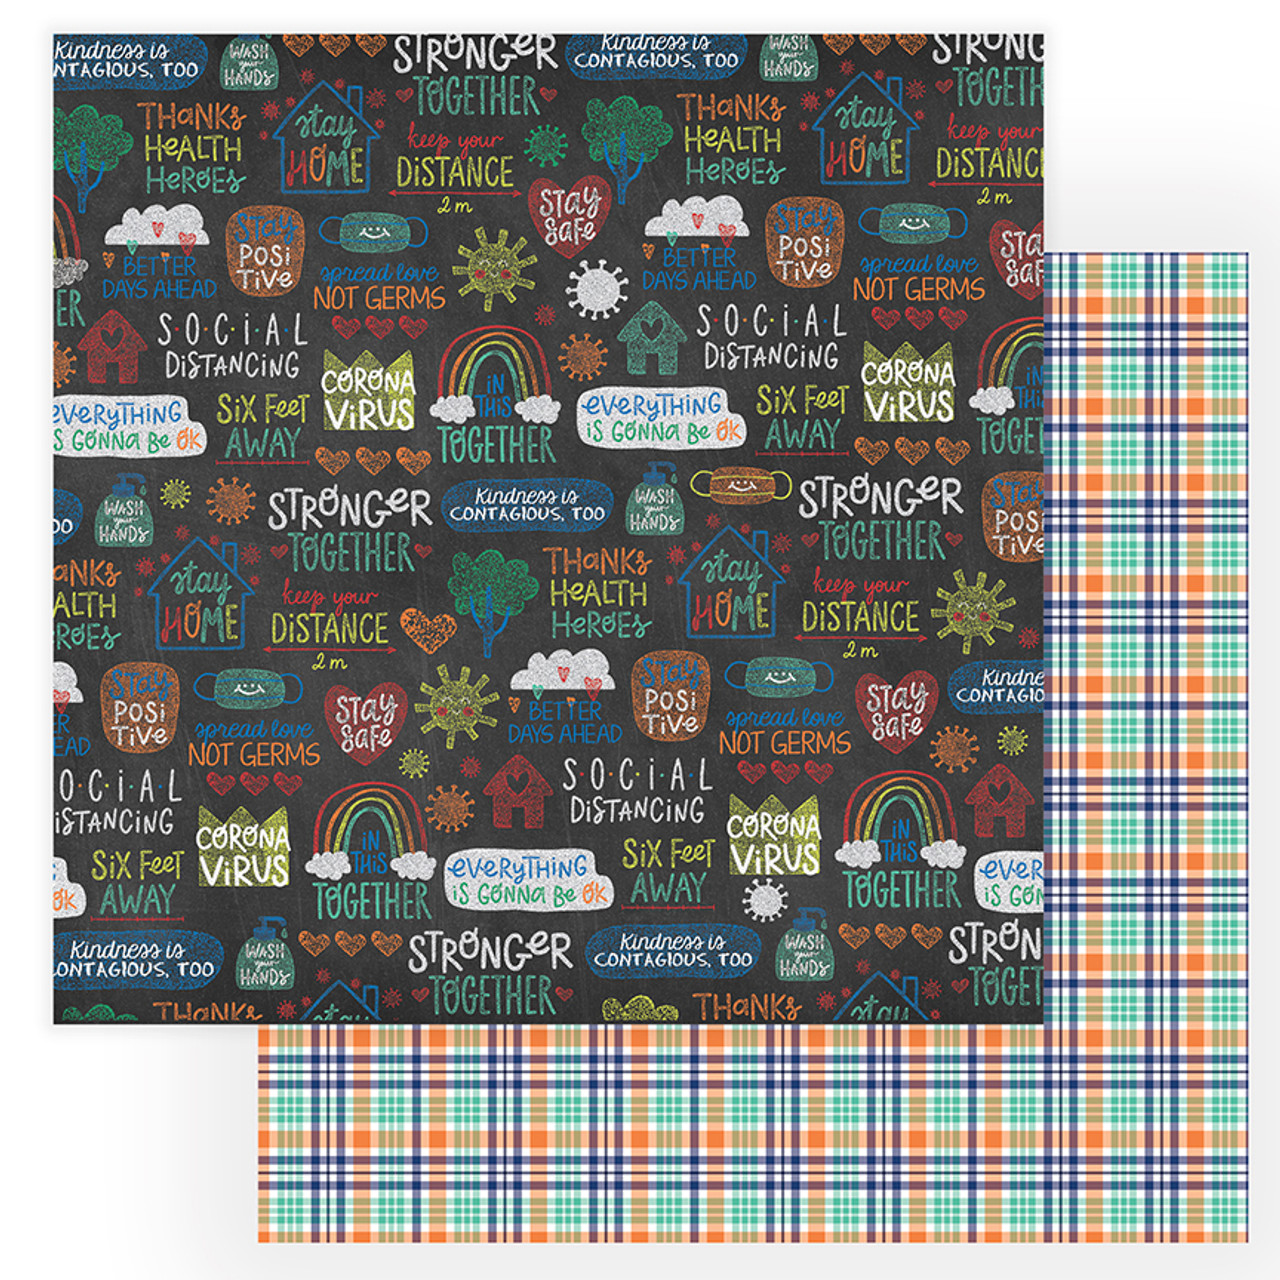 The New Normal Collection Sidewalk 12 x 12 Double-Sided Scrapbook Paper by Photo Play Paper